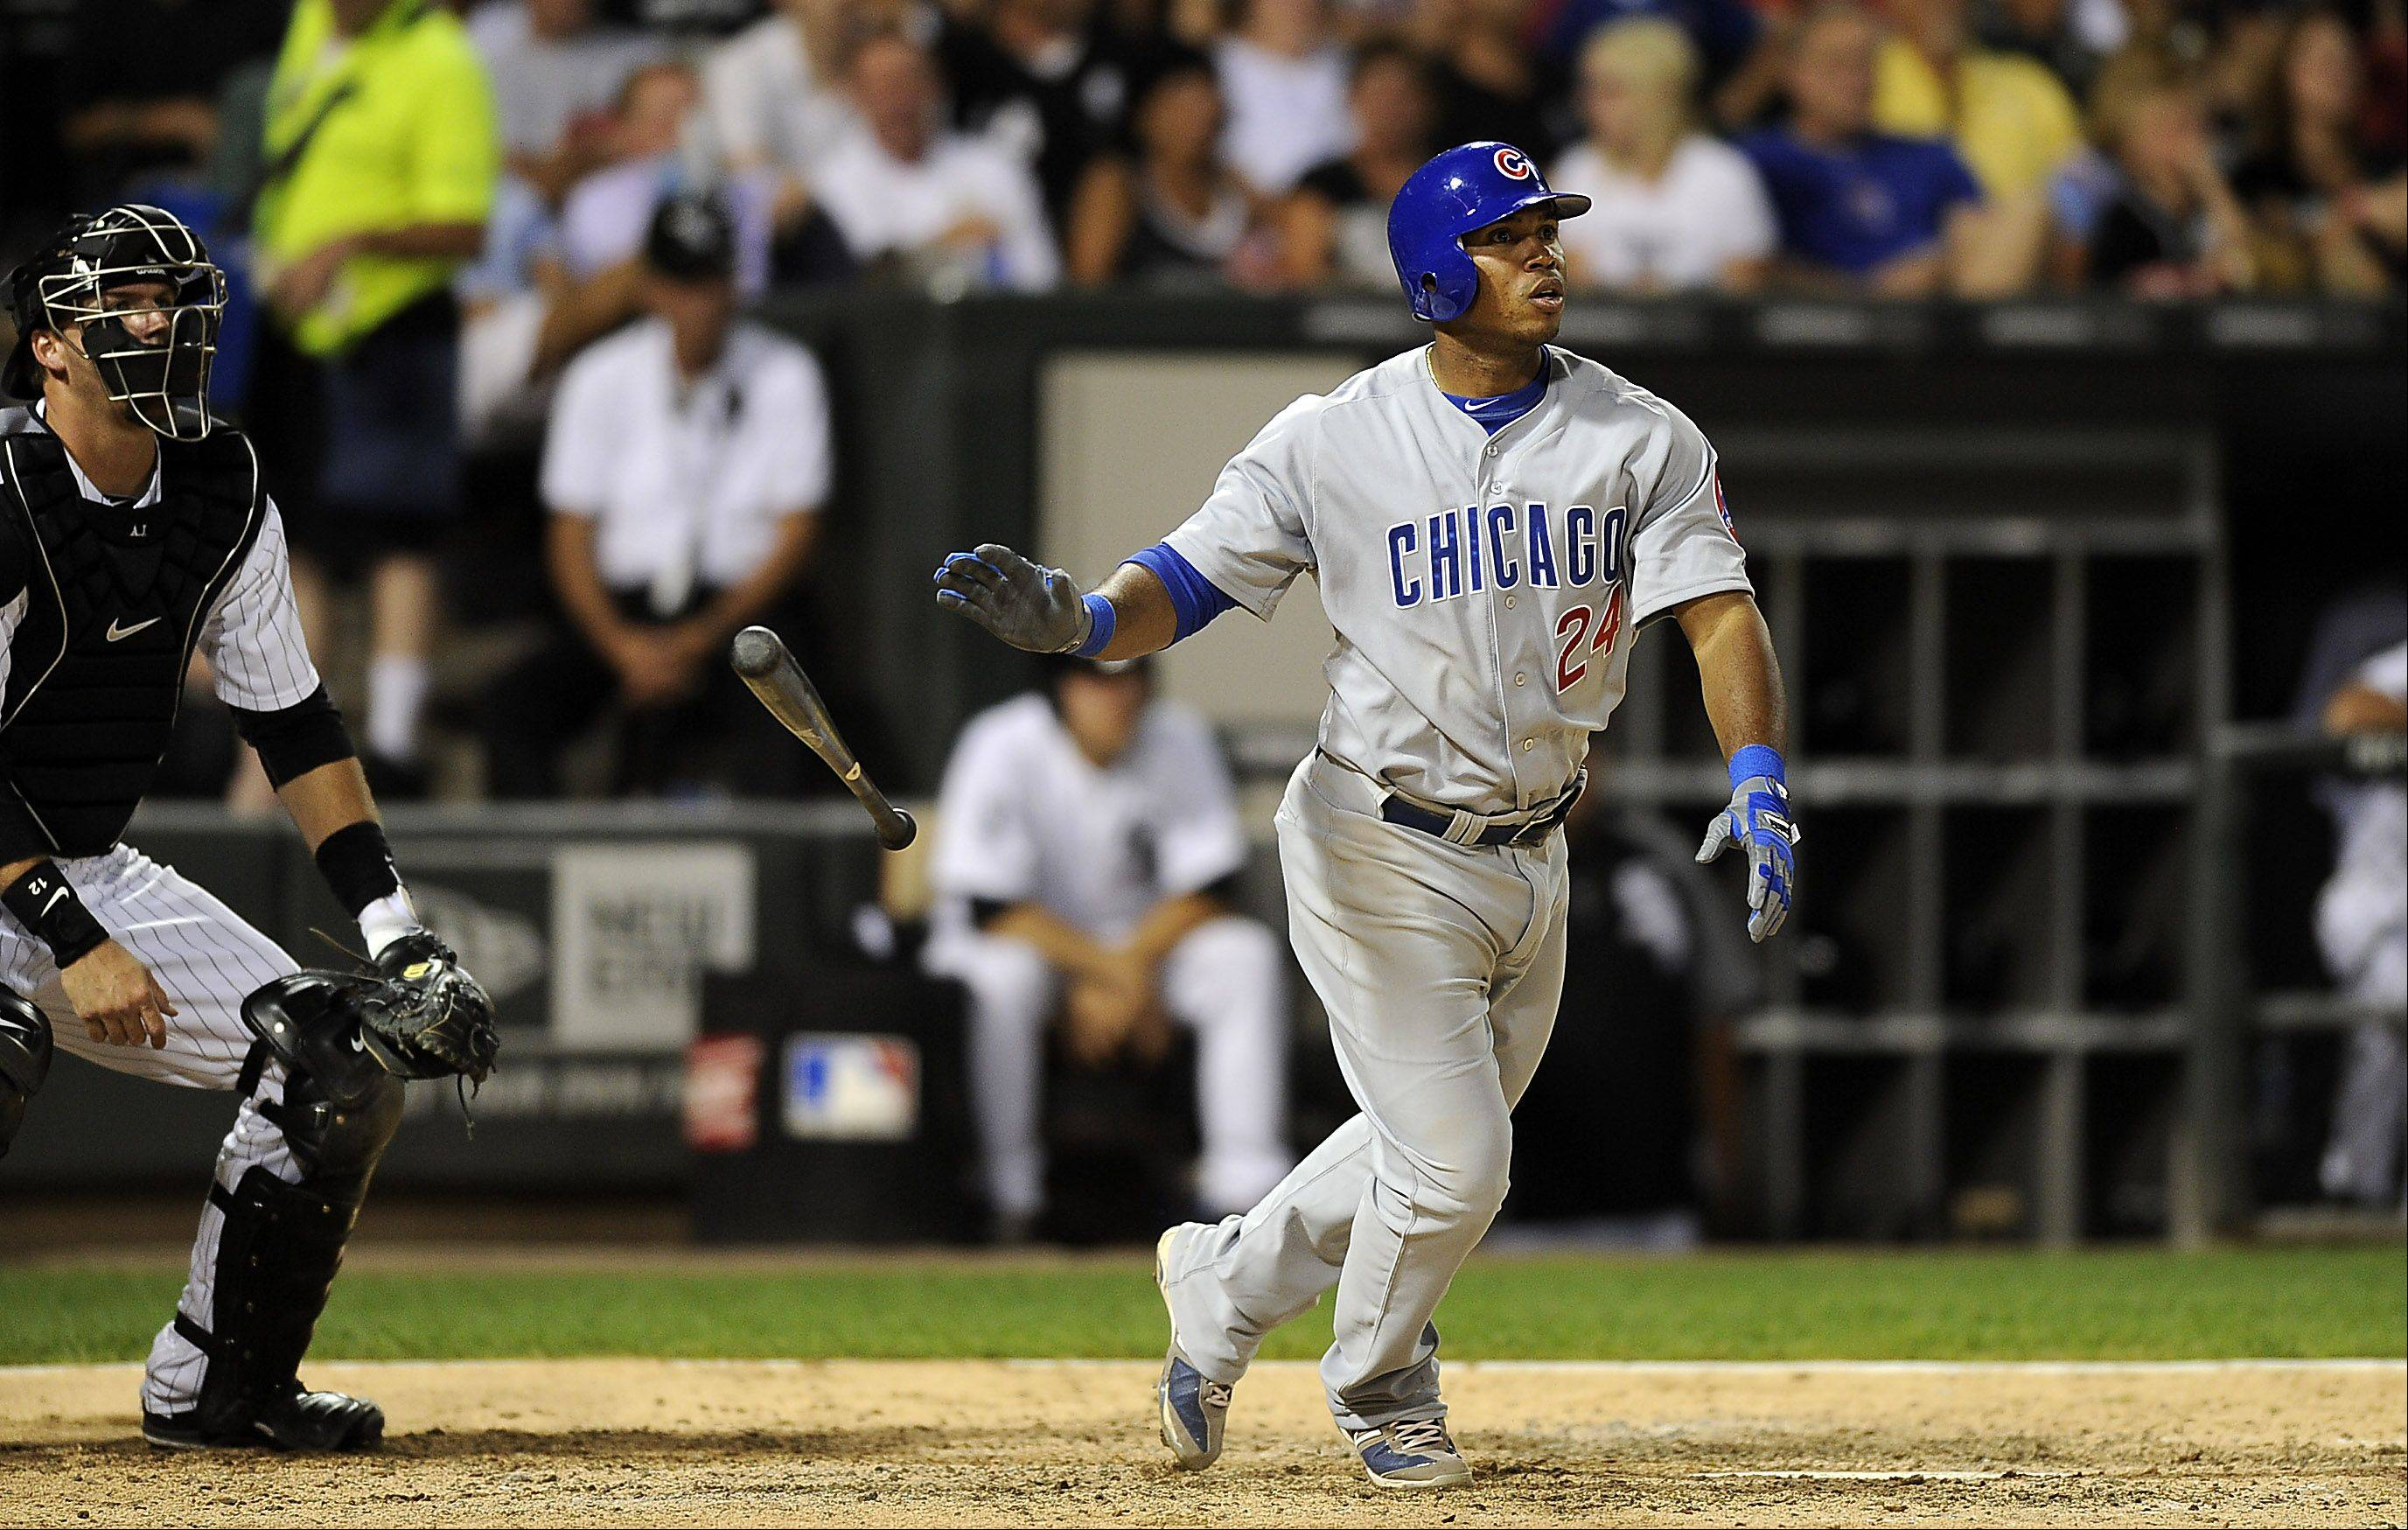 Mark Welsh/mwelsh@dailyherald.com � Chicago Cubs Luis Valbuena hits a seventh inning homerun to right field driving in multiple rbi runs at the crosstown classic, White Sox vs the Chicago Cubs on Monday.